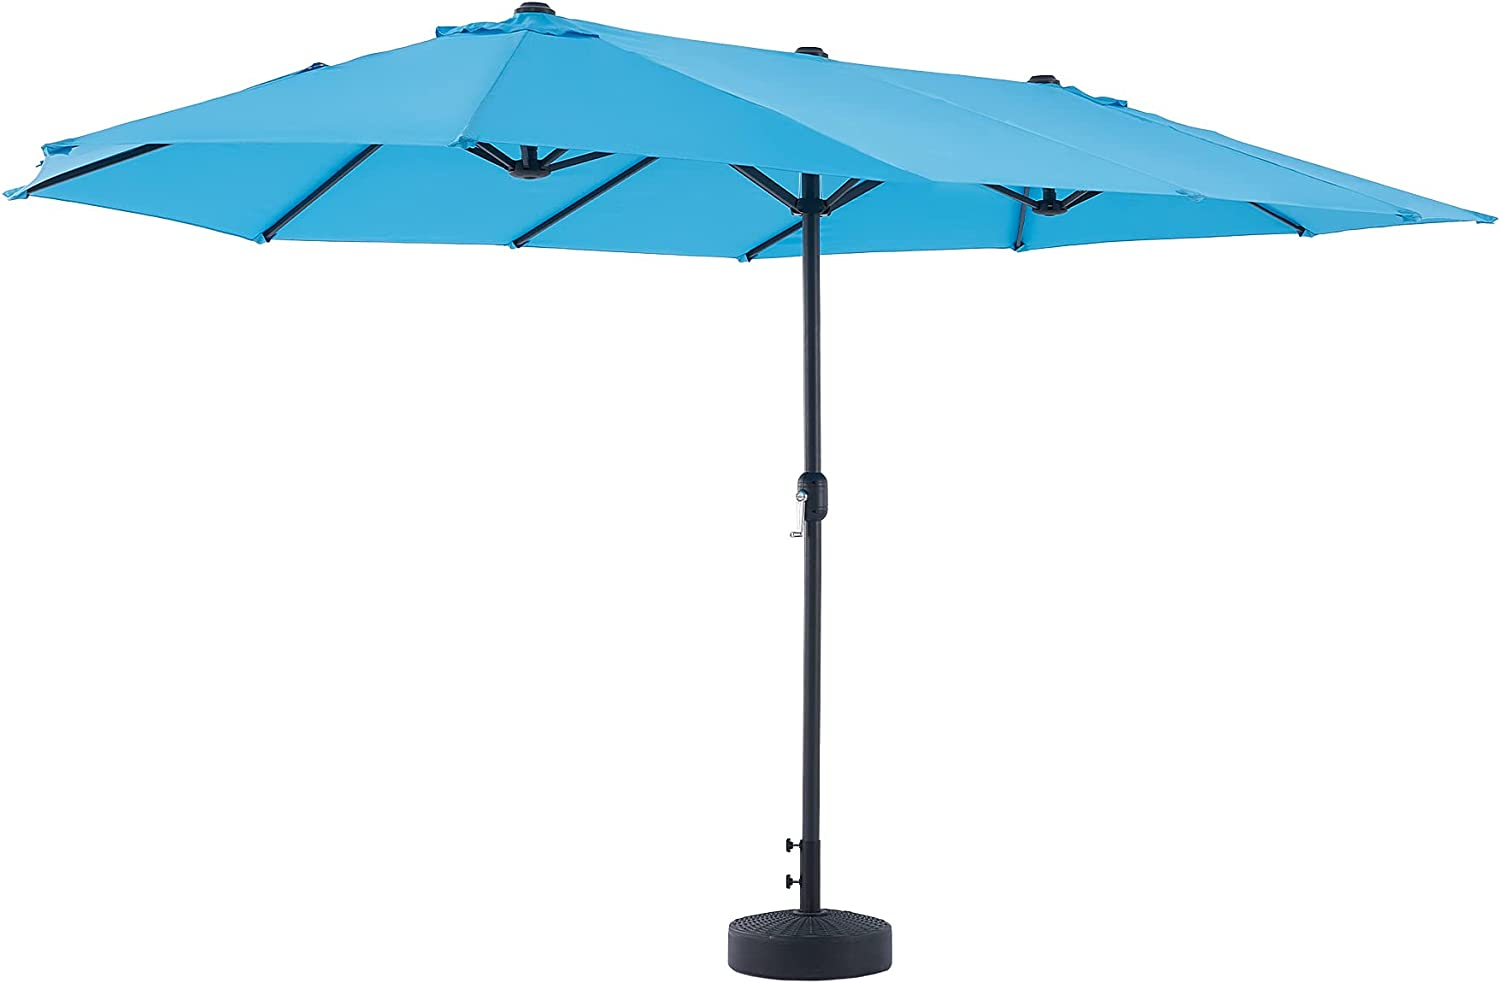 VONLUCE 15ft Double-Sided Patio Umbrella with 12 Steel Ribs 9ft Aluminum Pole...